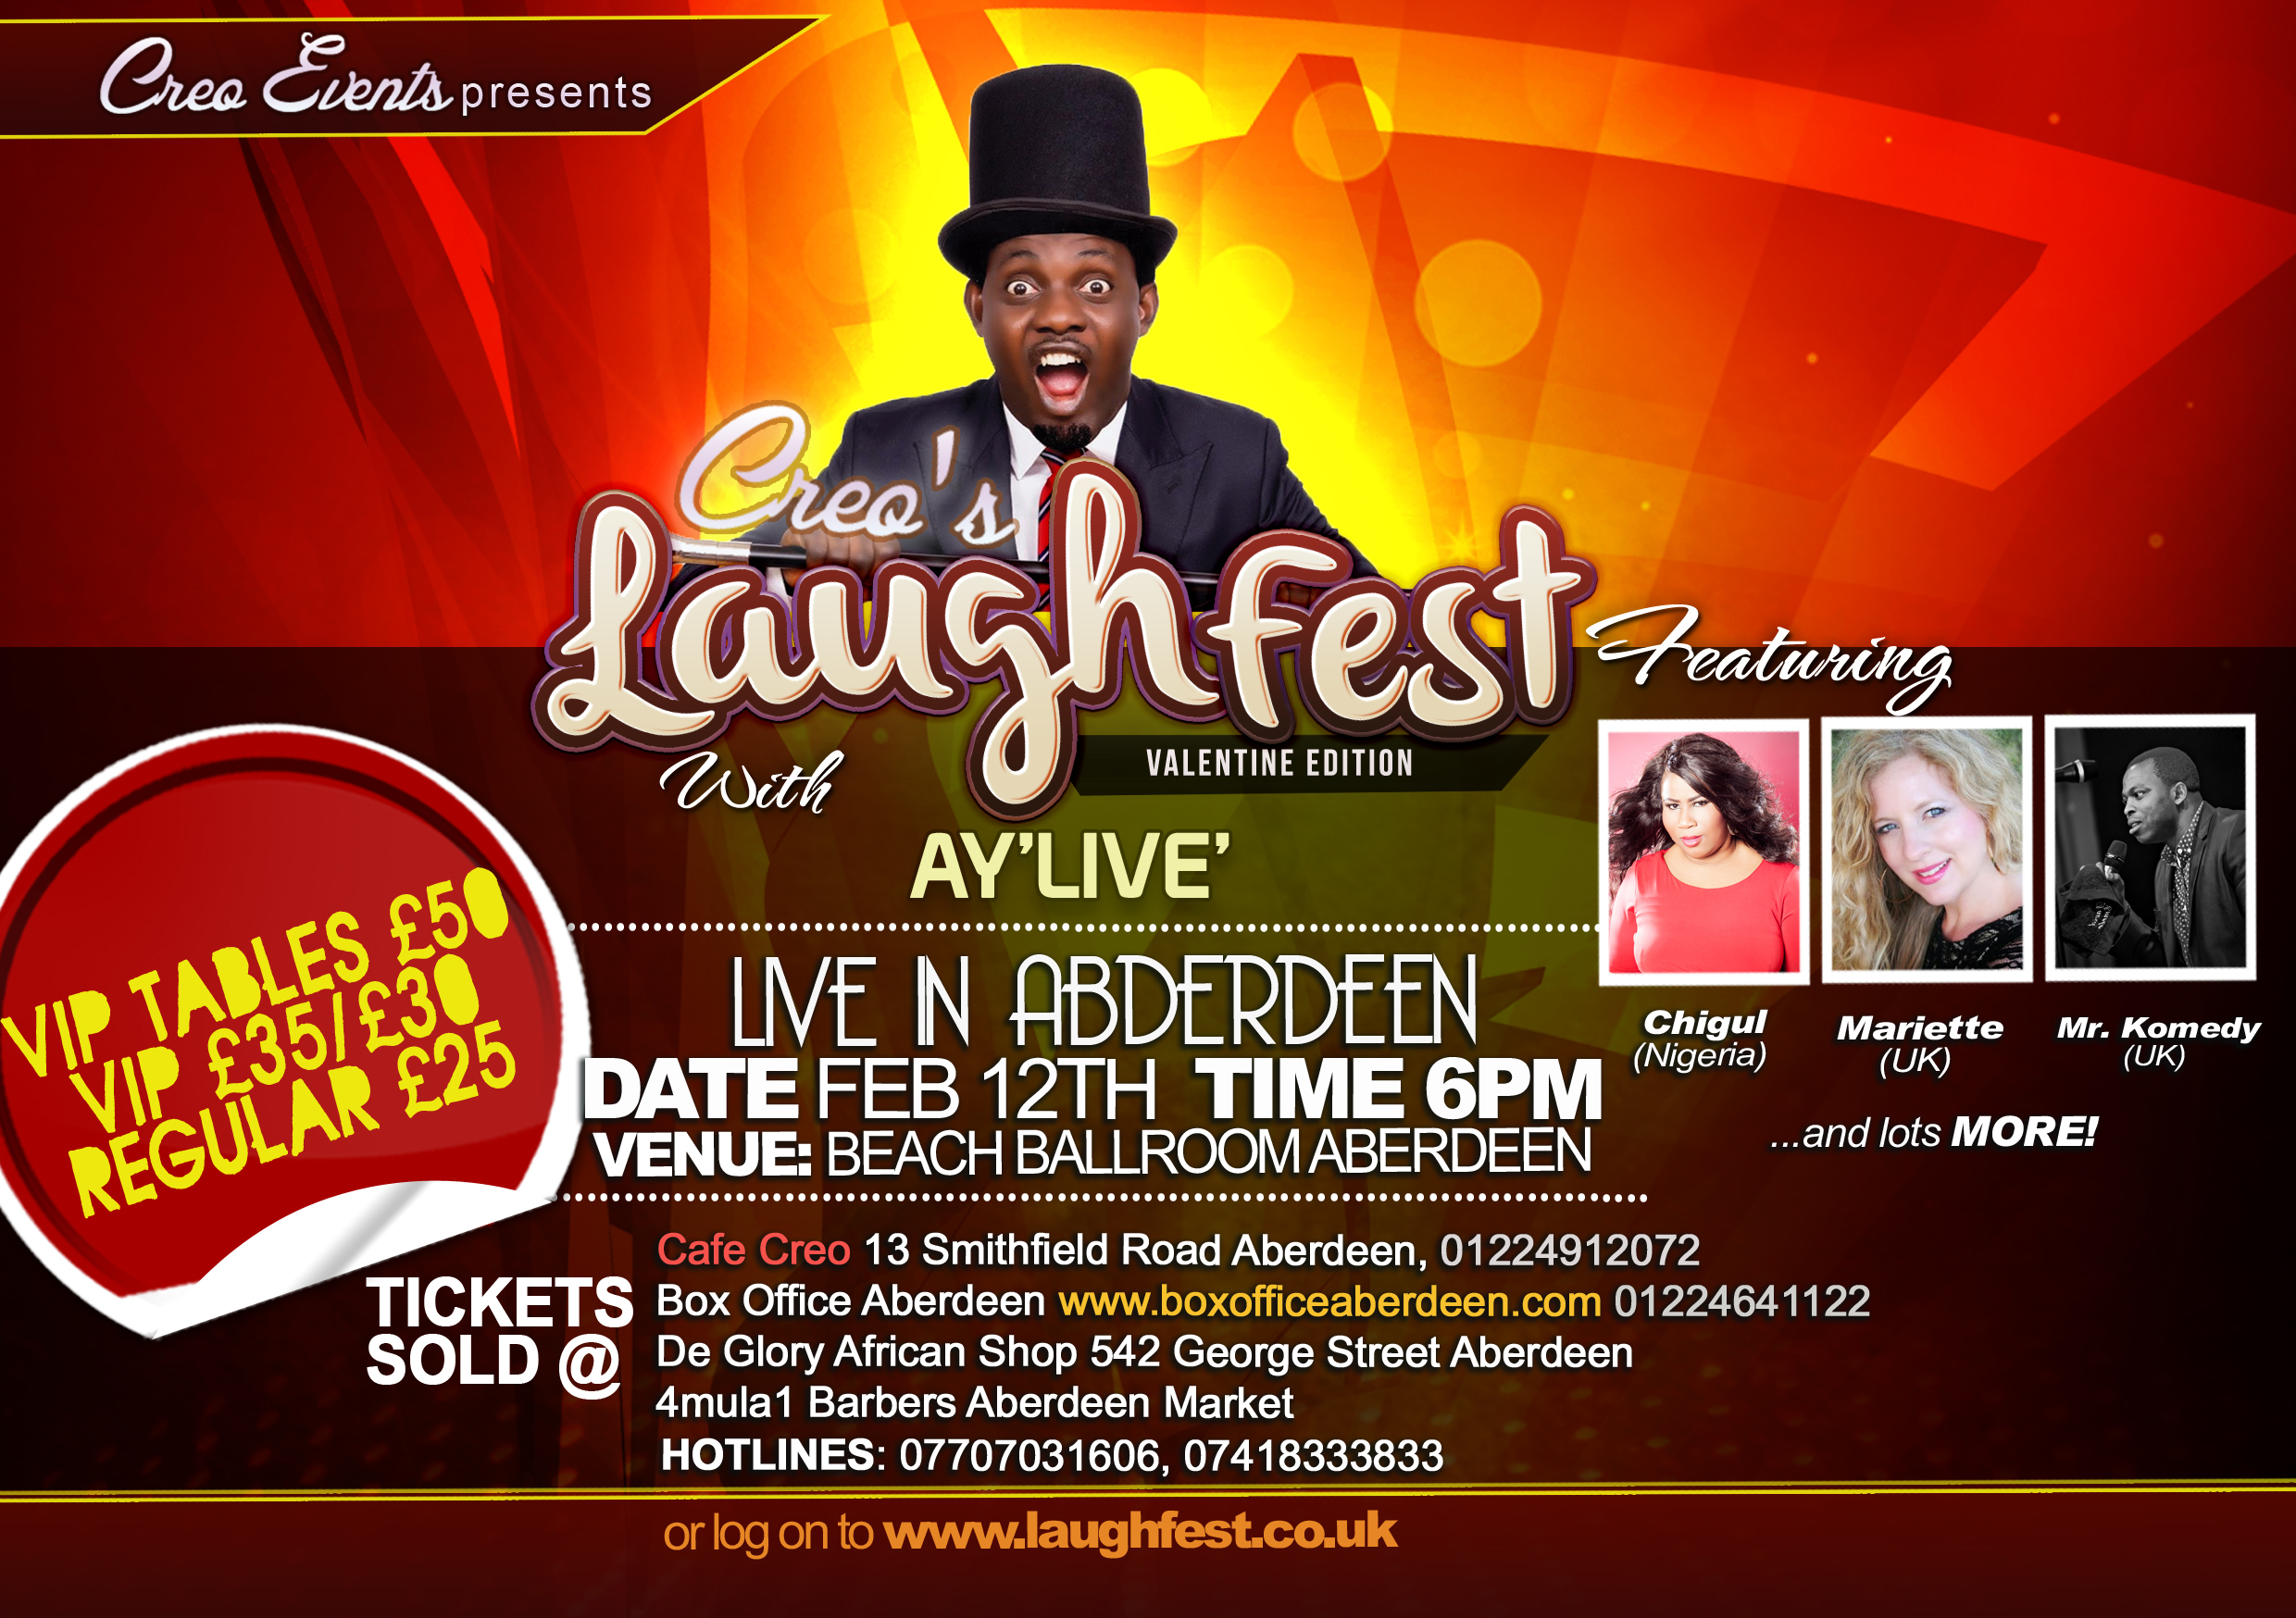 Creo's Laughfest 2015 Feb 12